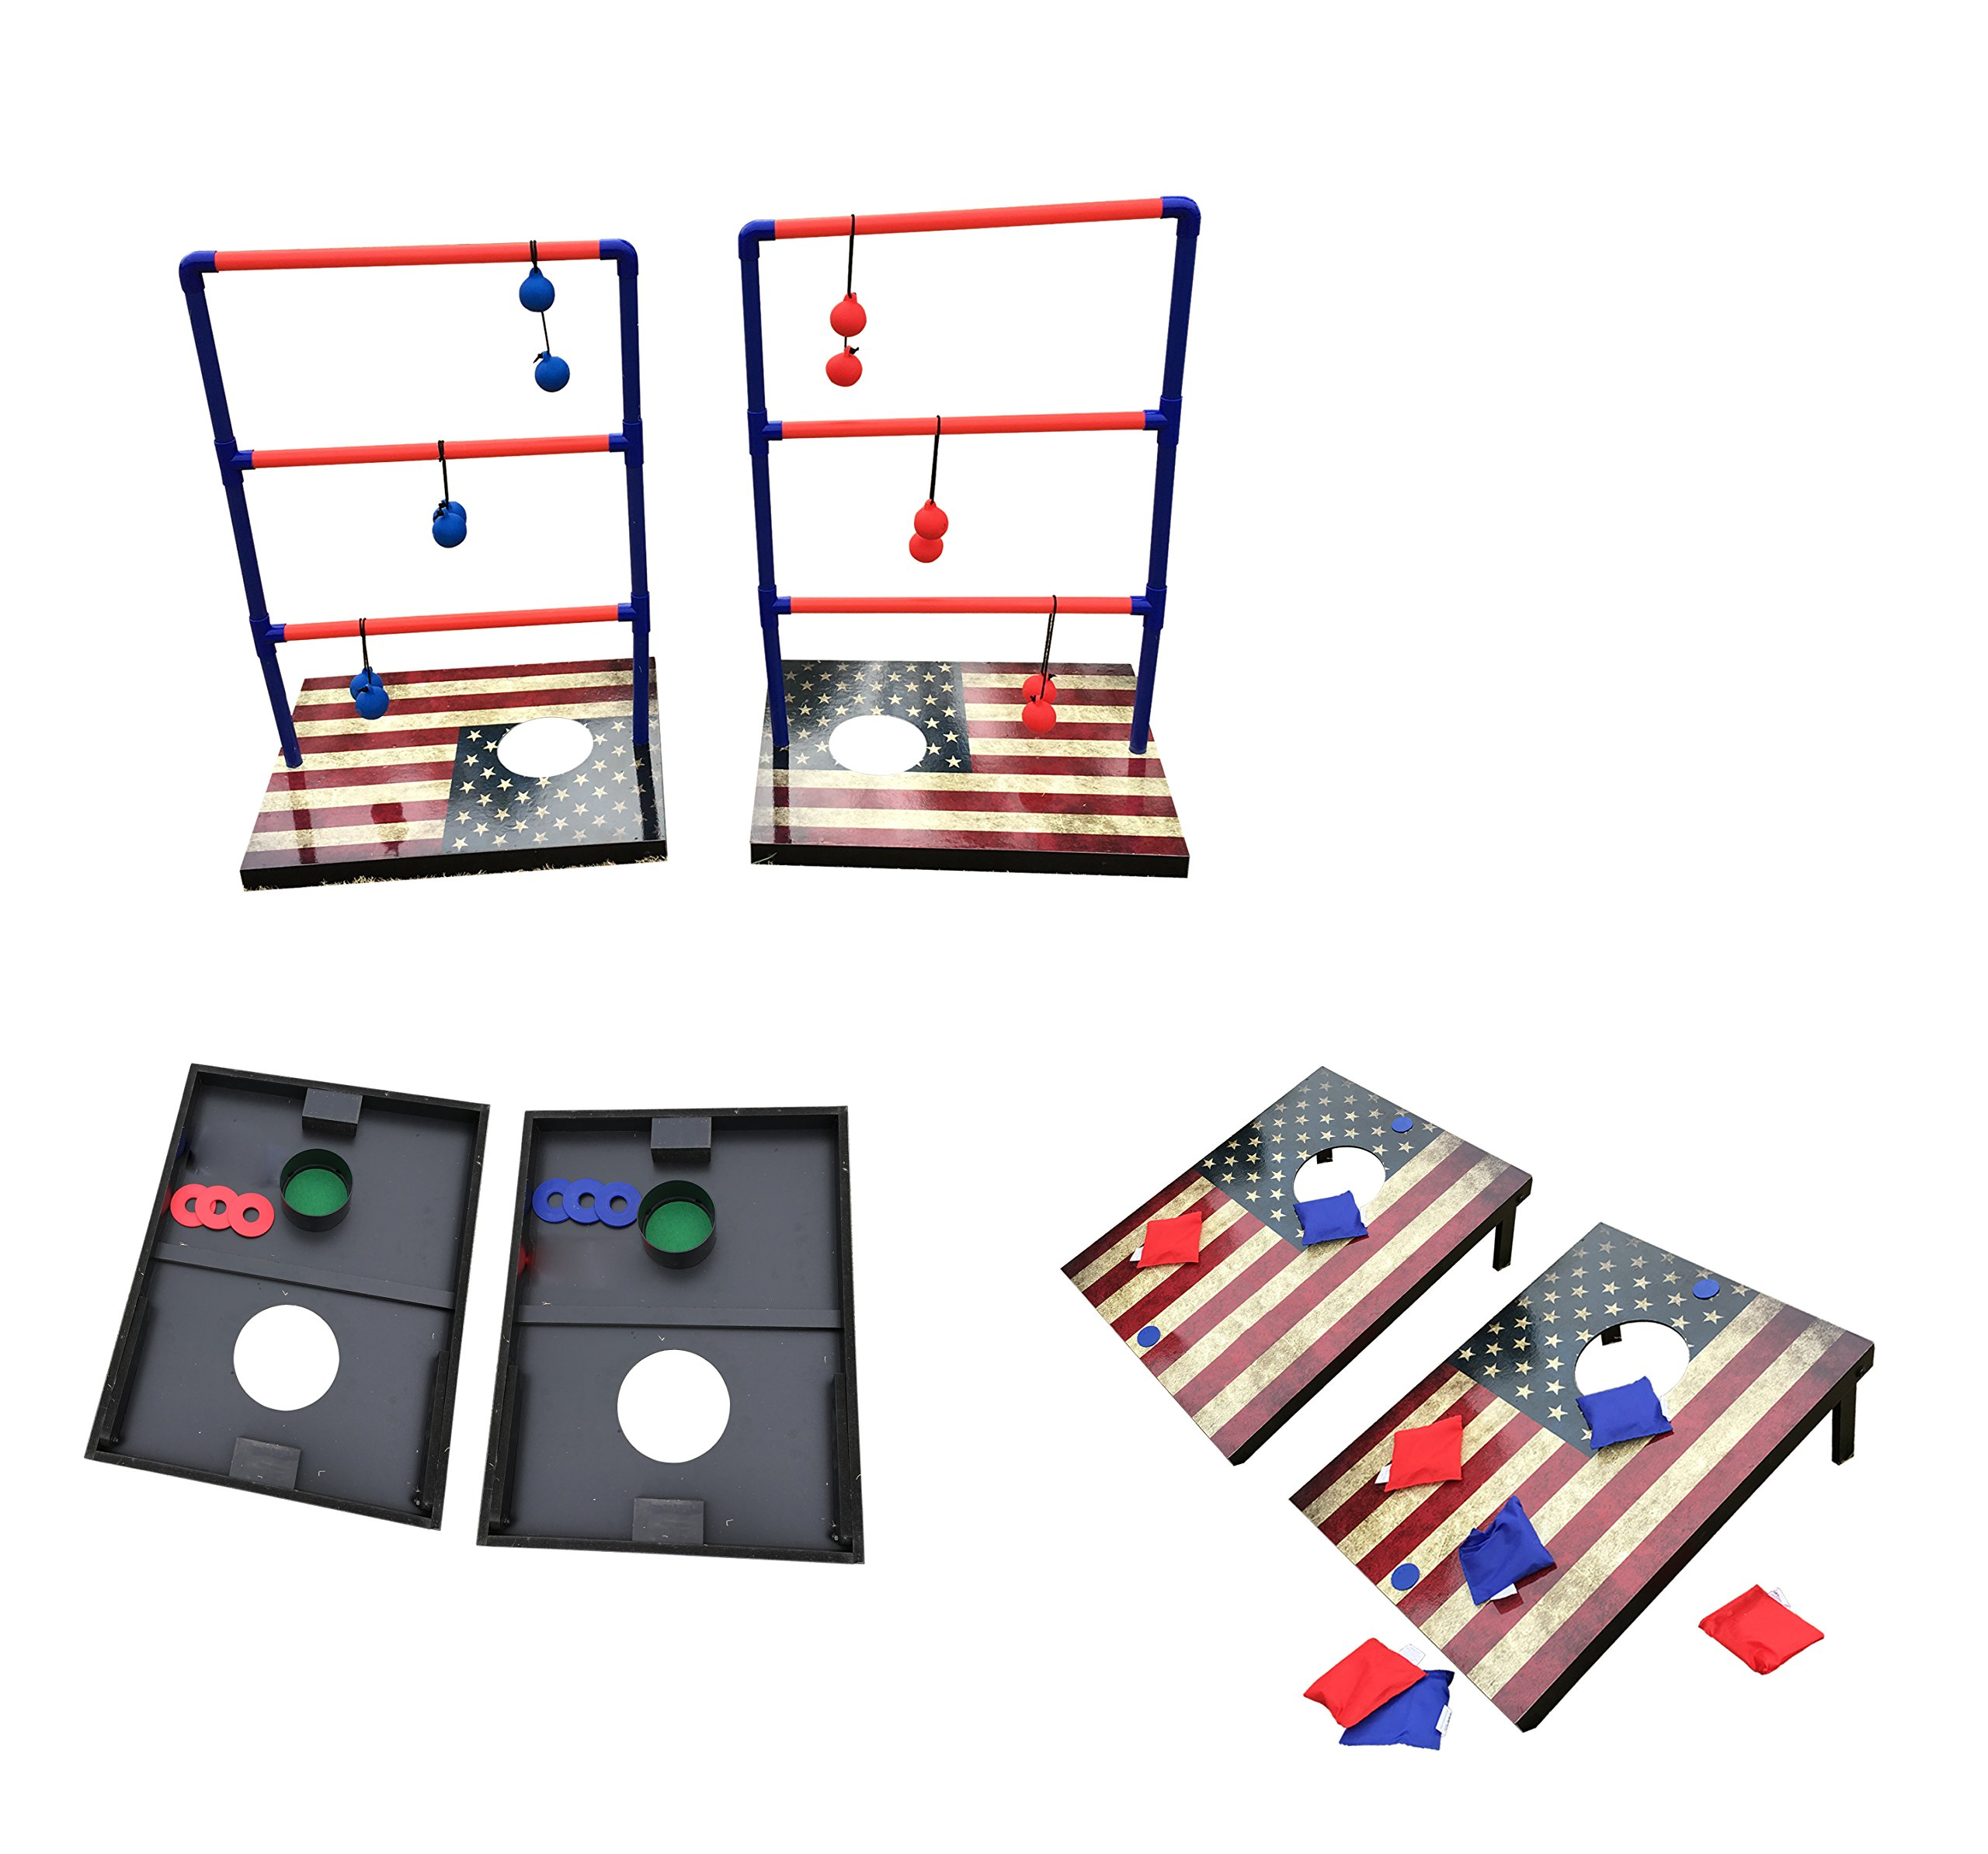 SPORT BEATS 3 in 1 Combo Toss Games,Ladder Ball Toss,Corn Hole Boards Bean Bag Toss Game, Washers Toss Game,Yard Outdoor Family Game-Backyard Fun Camping Games